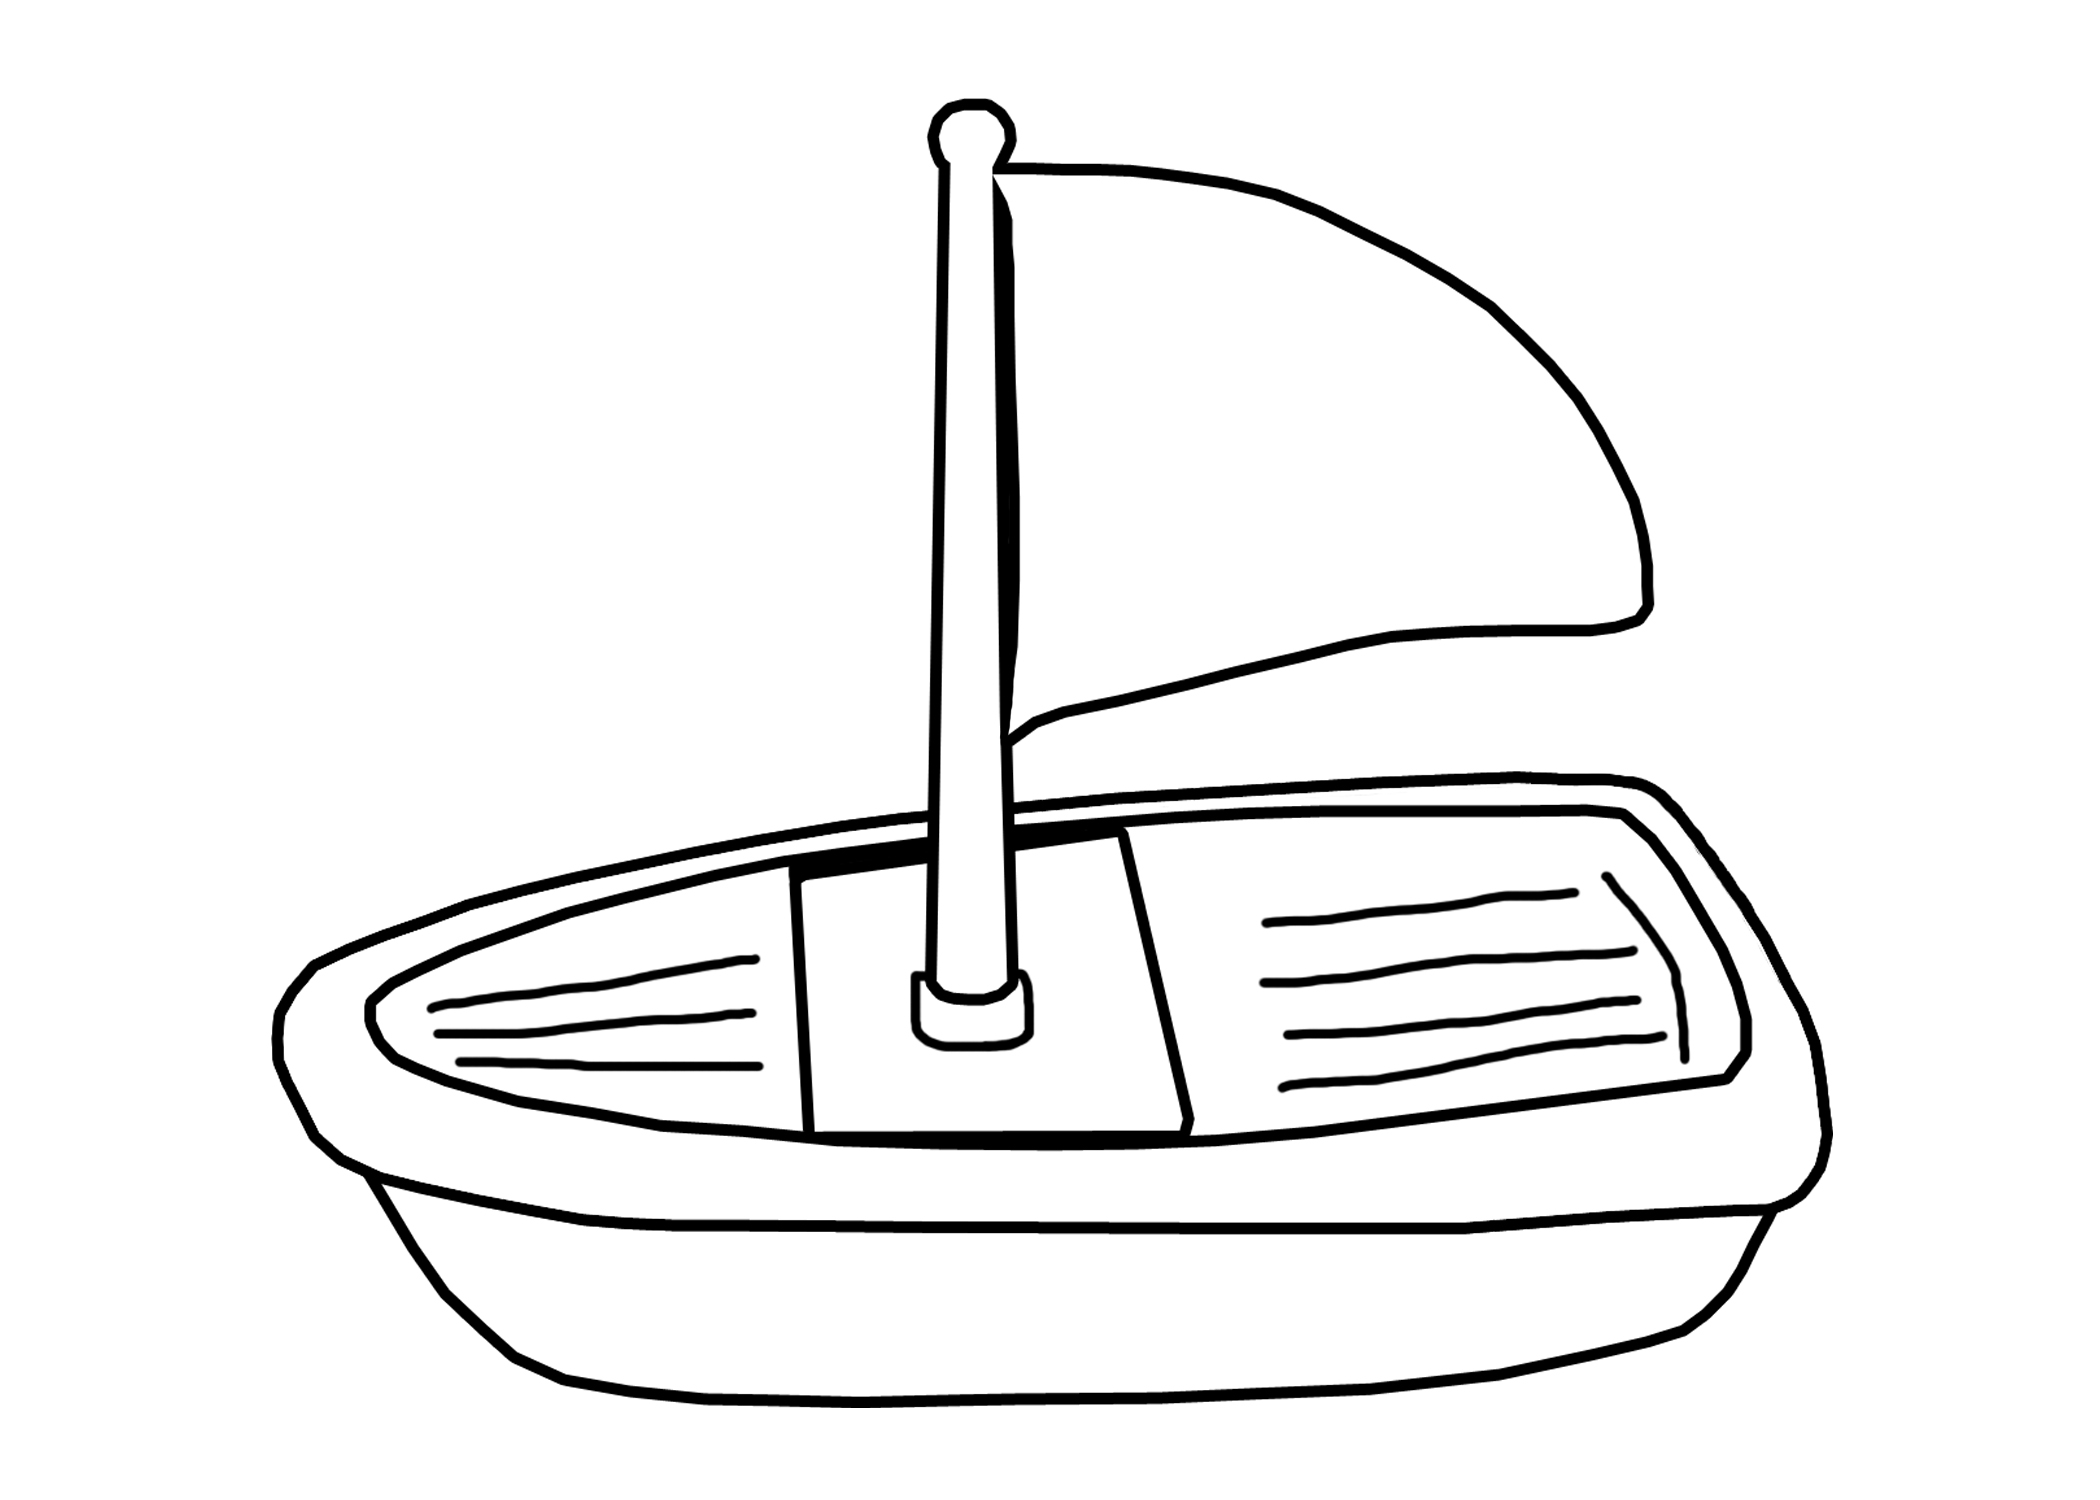 It's just a photo of Sailboat Template Printable inside white